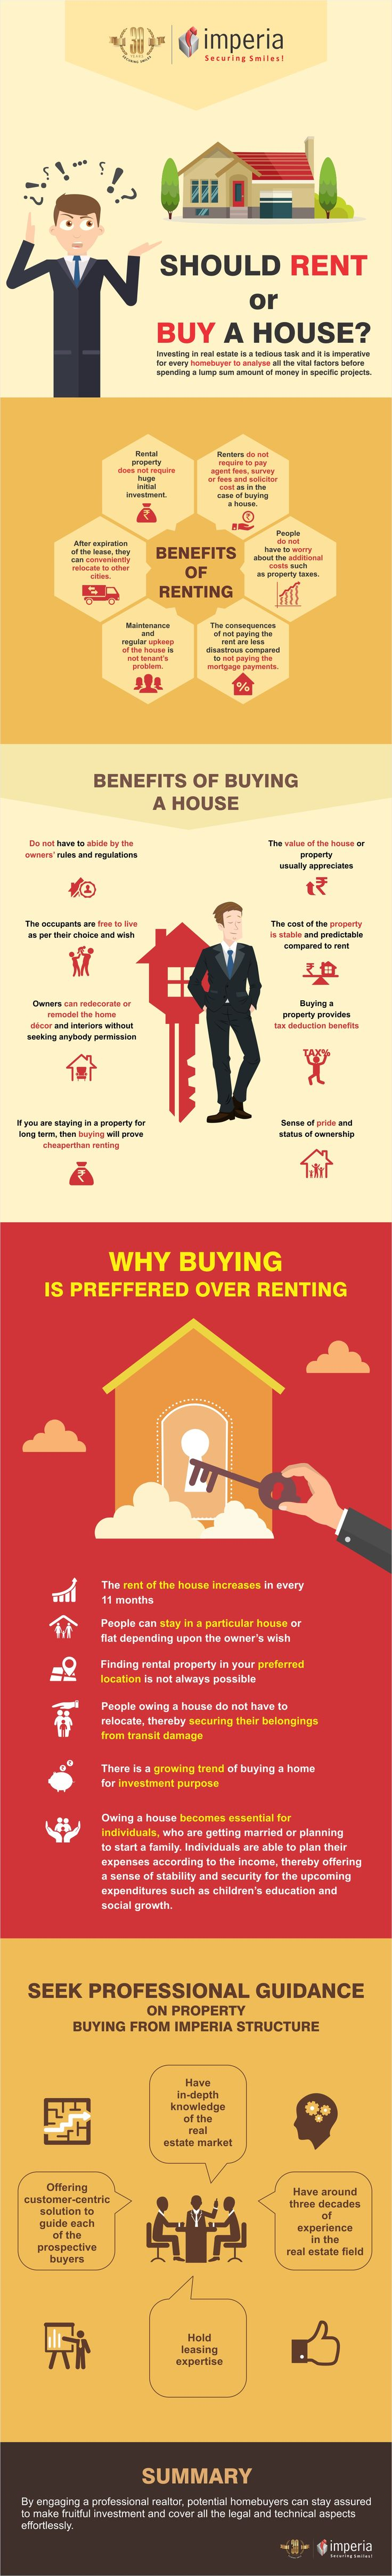 Should Rent or Buy a Home? #ImperiaStructures